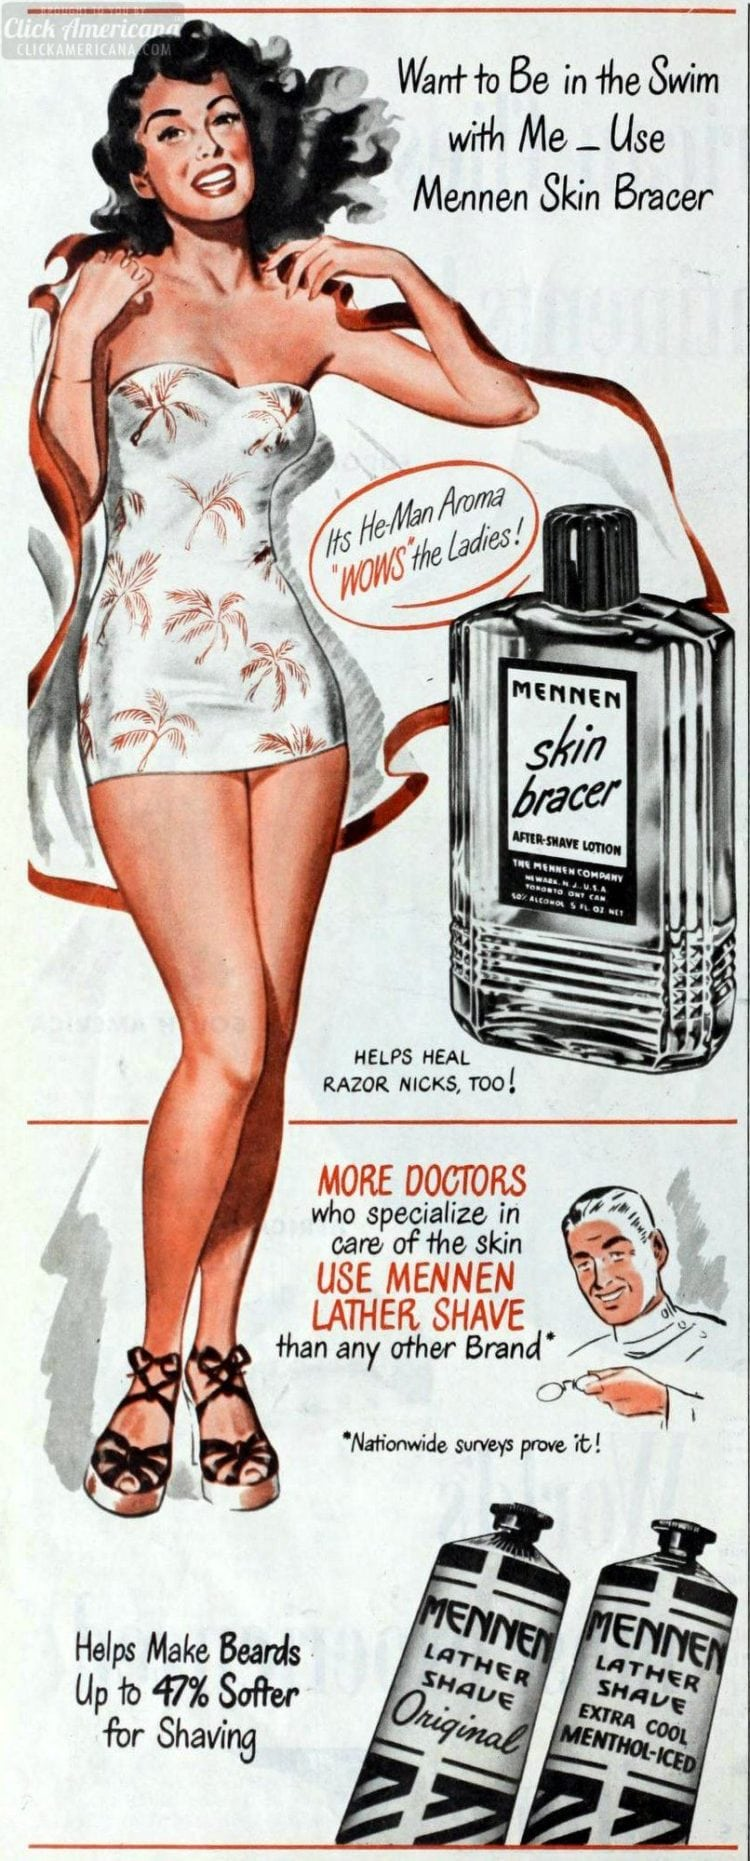 Want to be in the swim with me -- use Mennen Skin Bracer (1948)